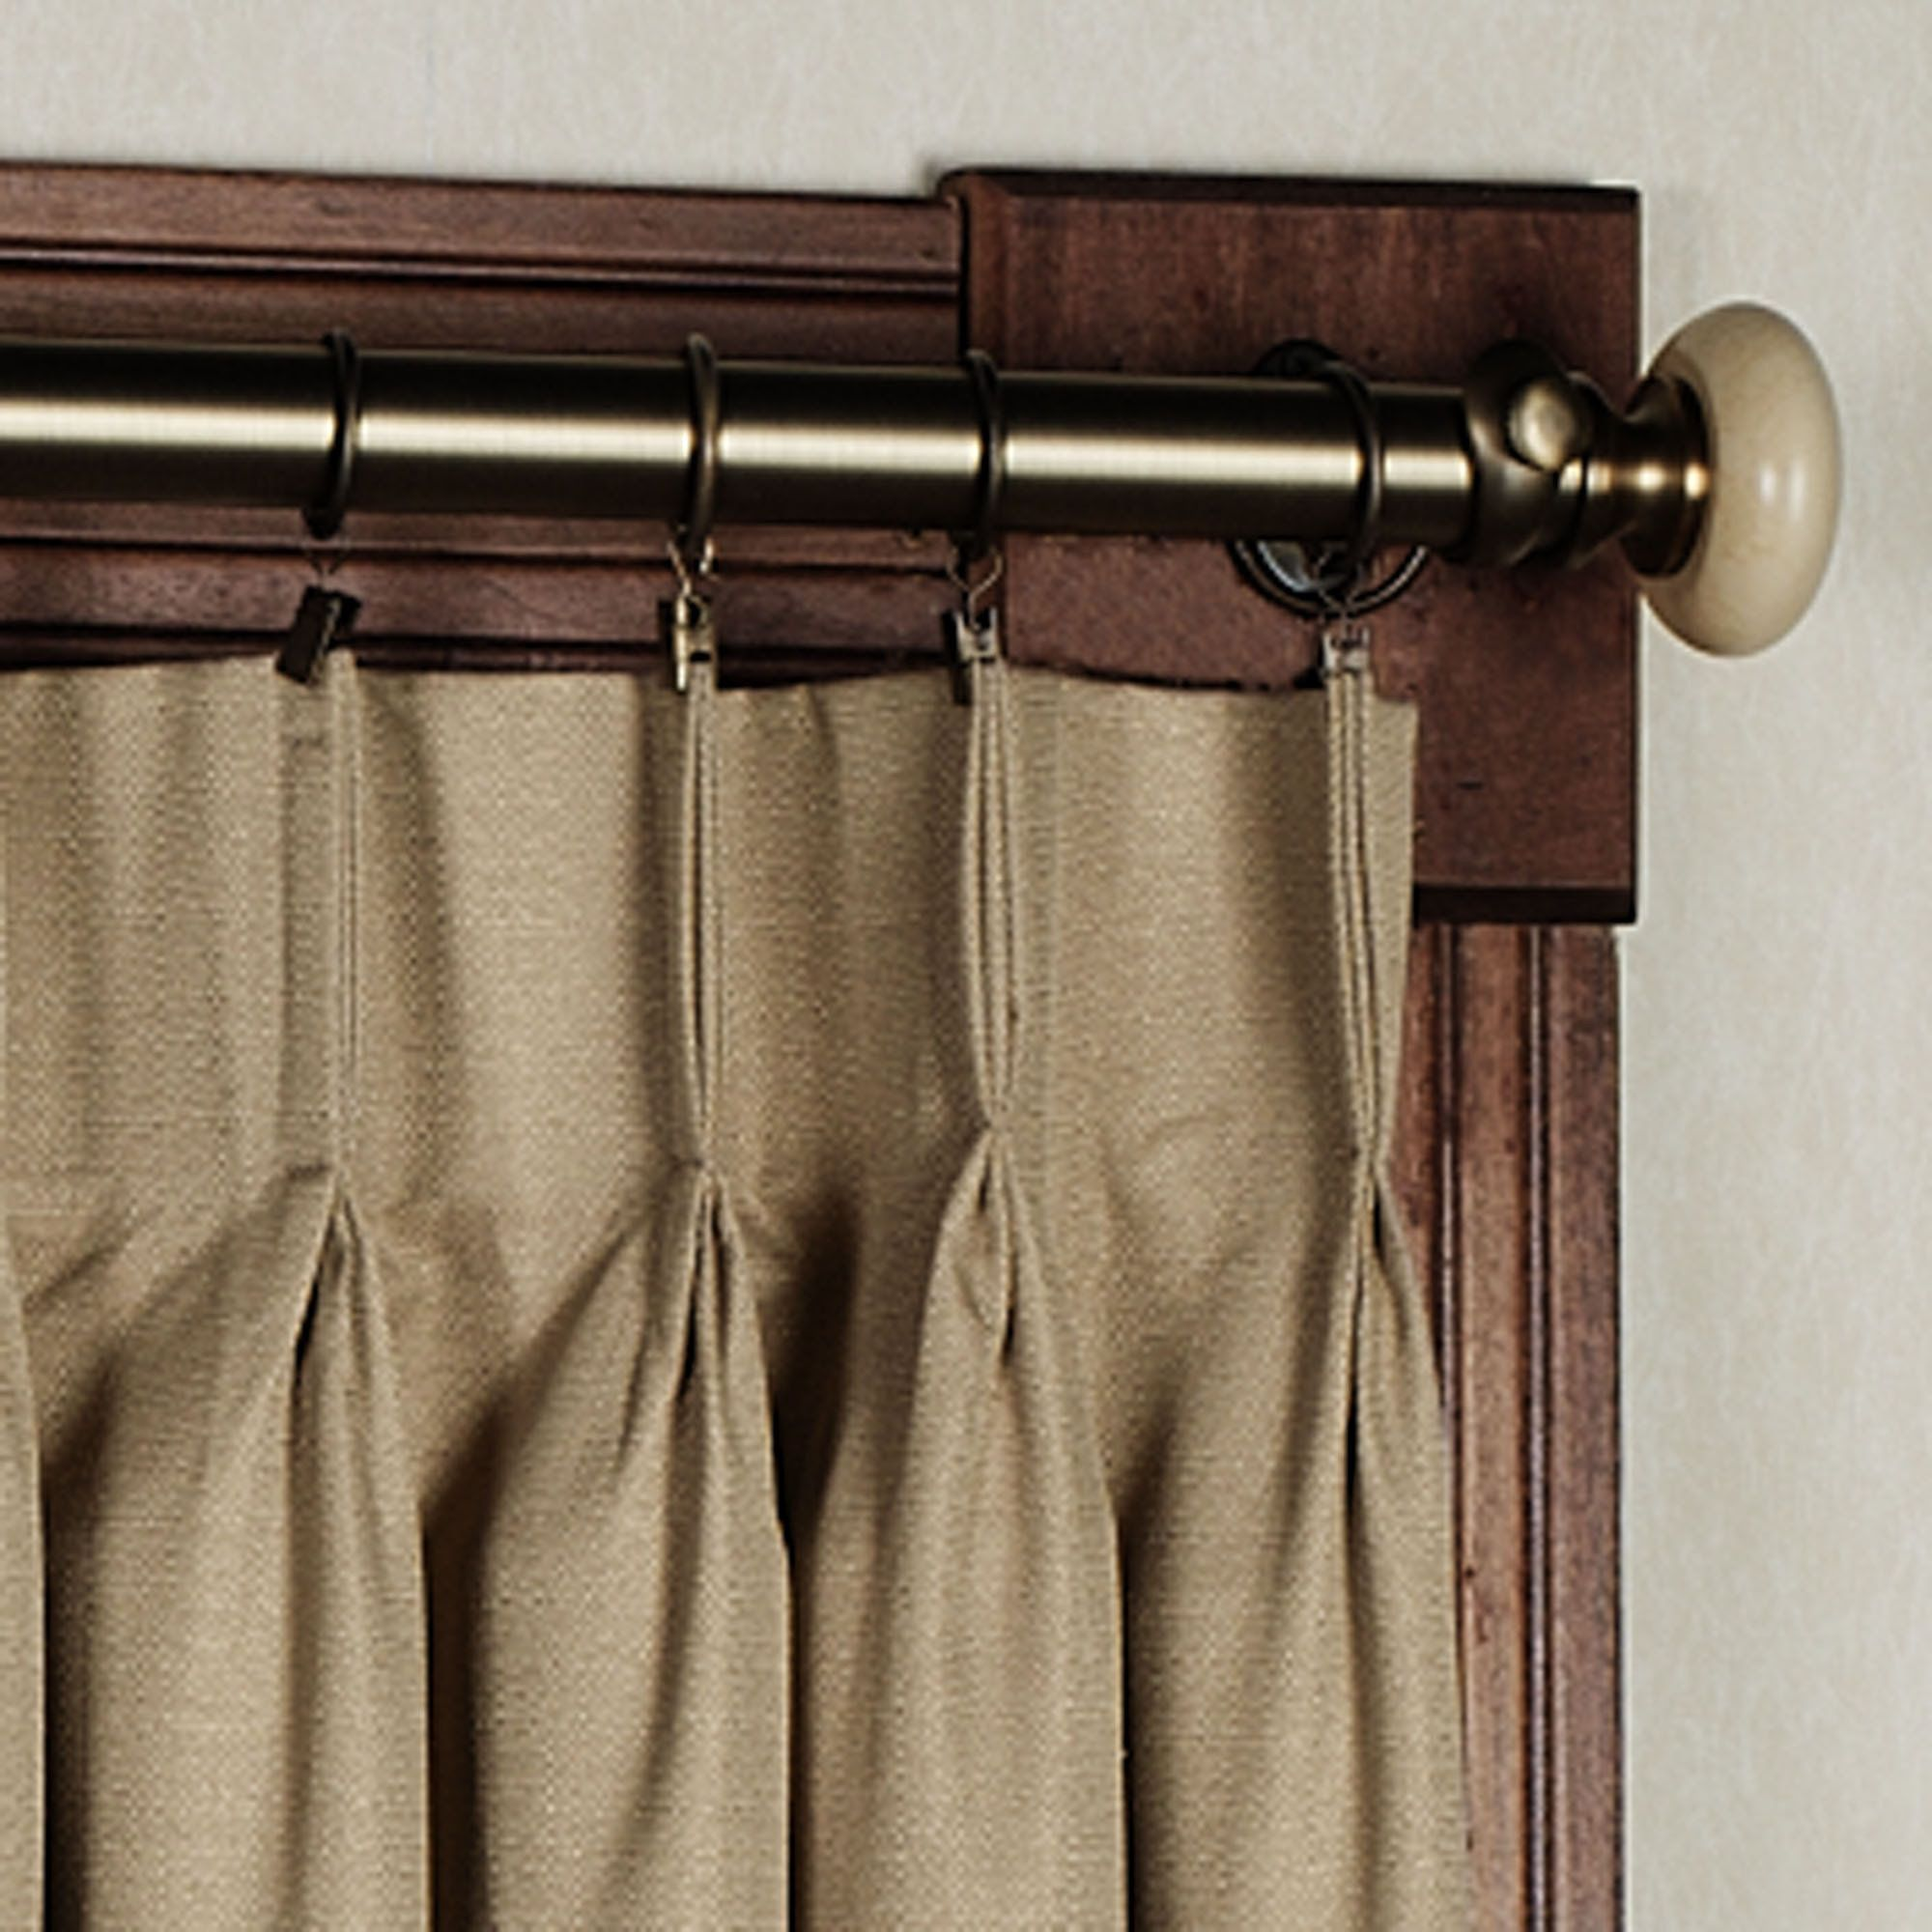 Crosby Pinch Pleat Wide Curtain Pair 144 x 84 | Wide curtains and House for French Pleat Drapes  55dqh